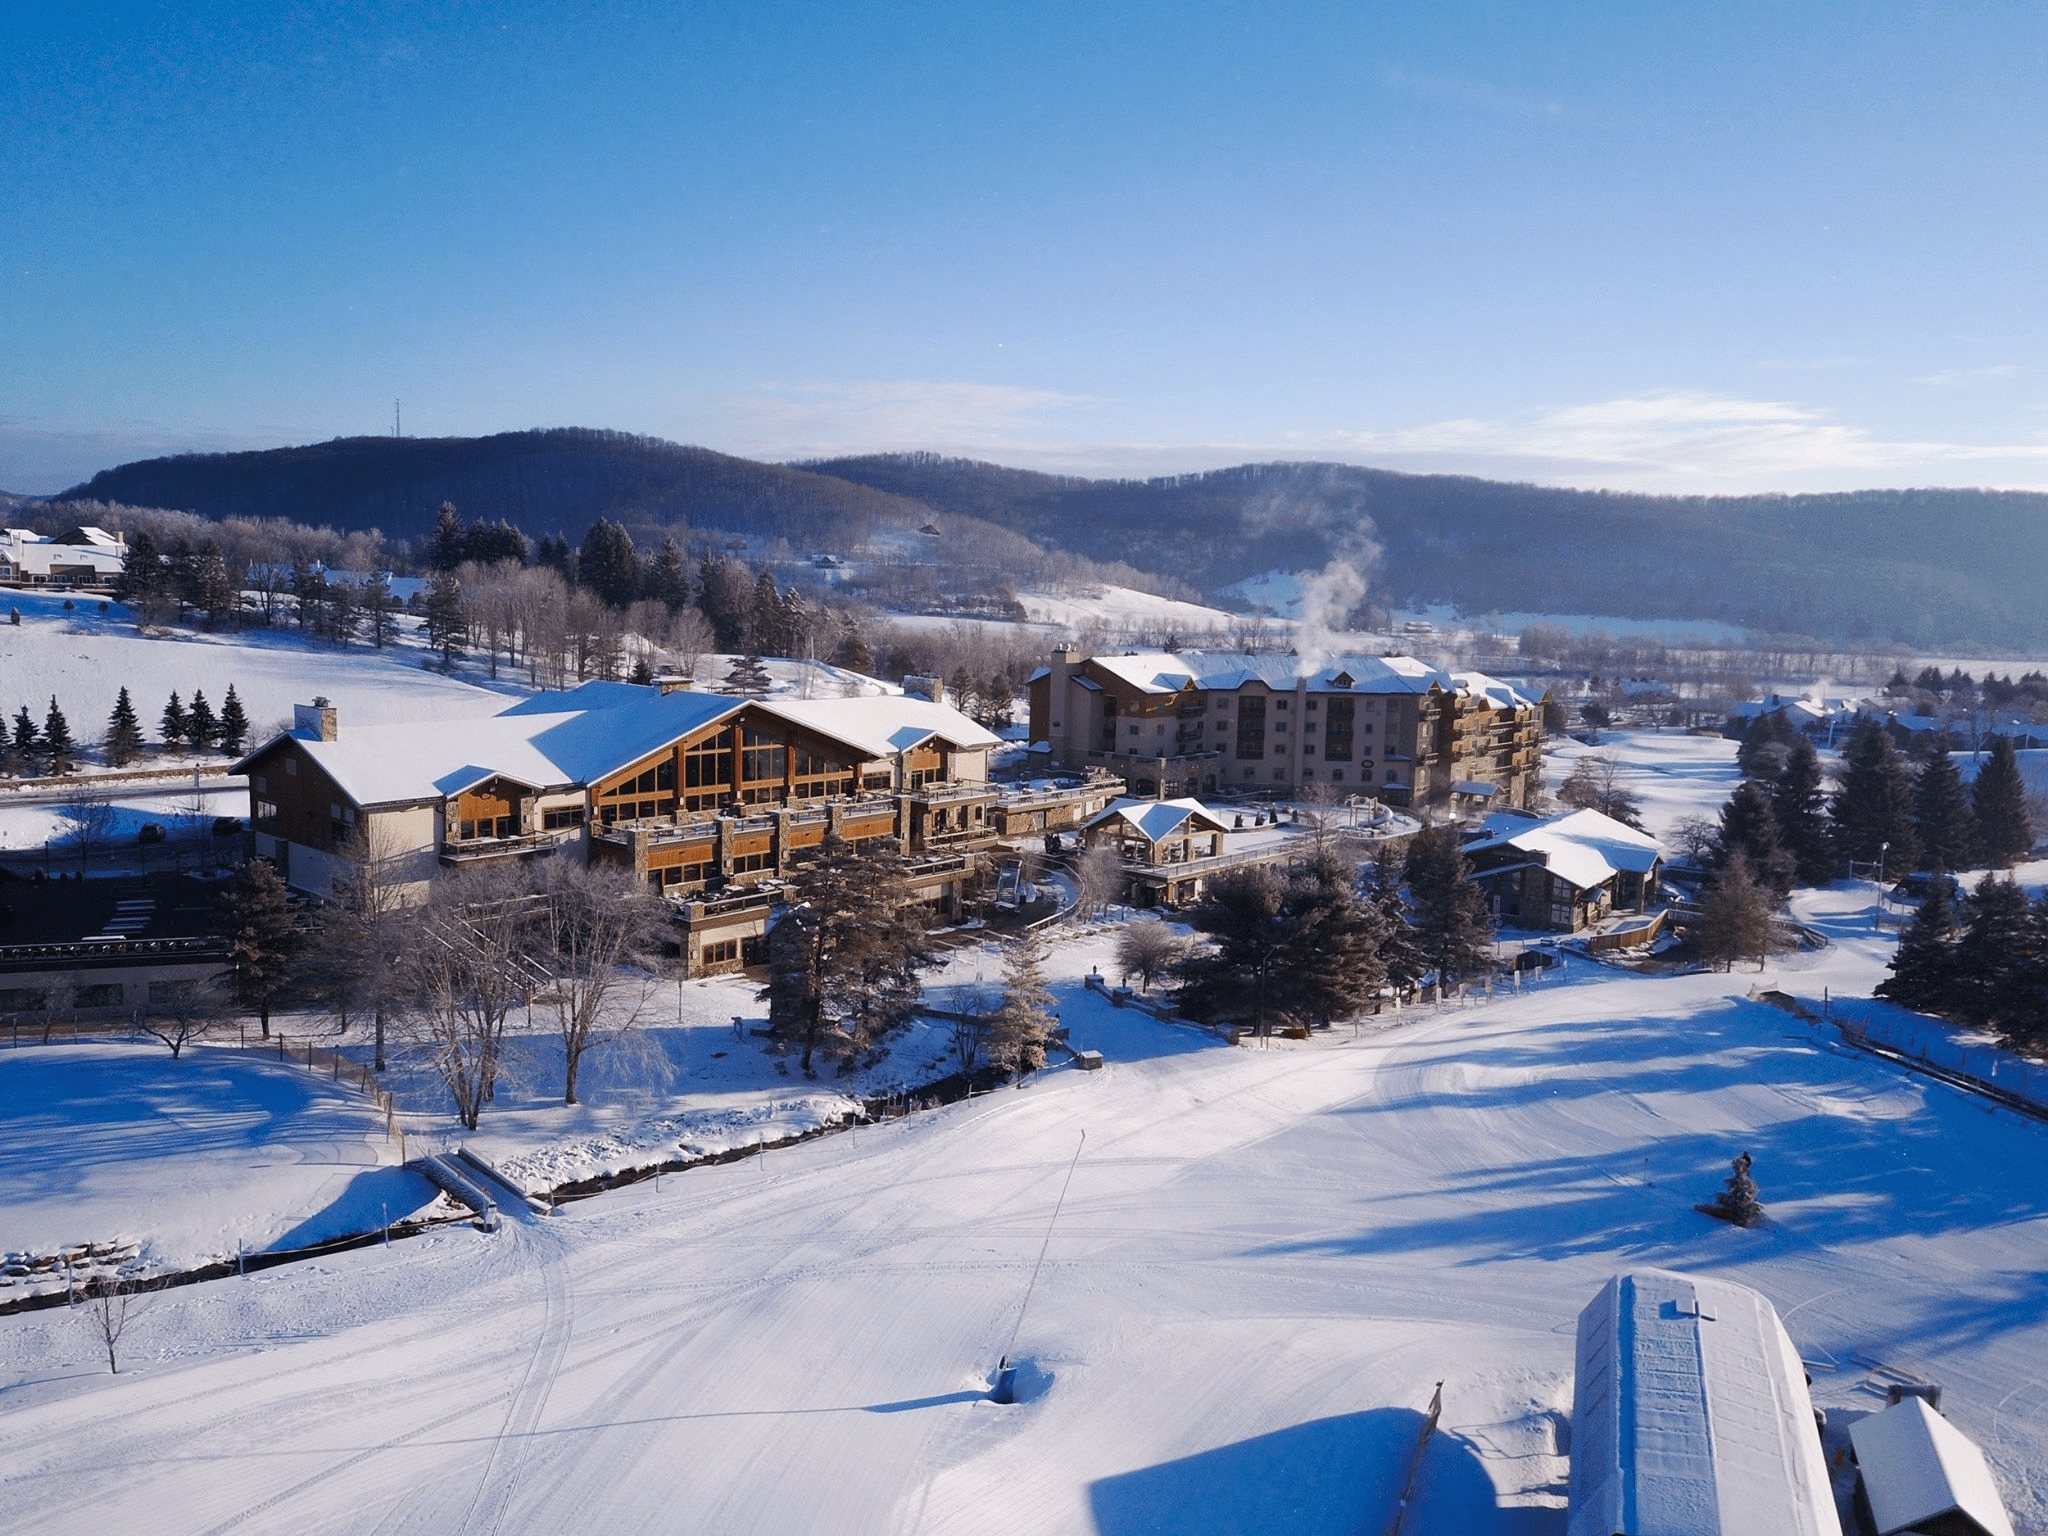 18. Holiday Valley, New York